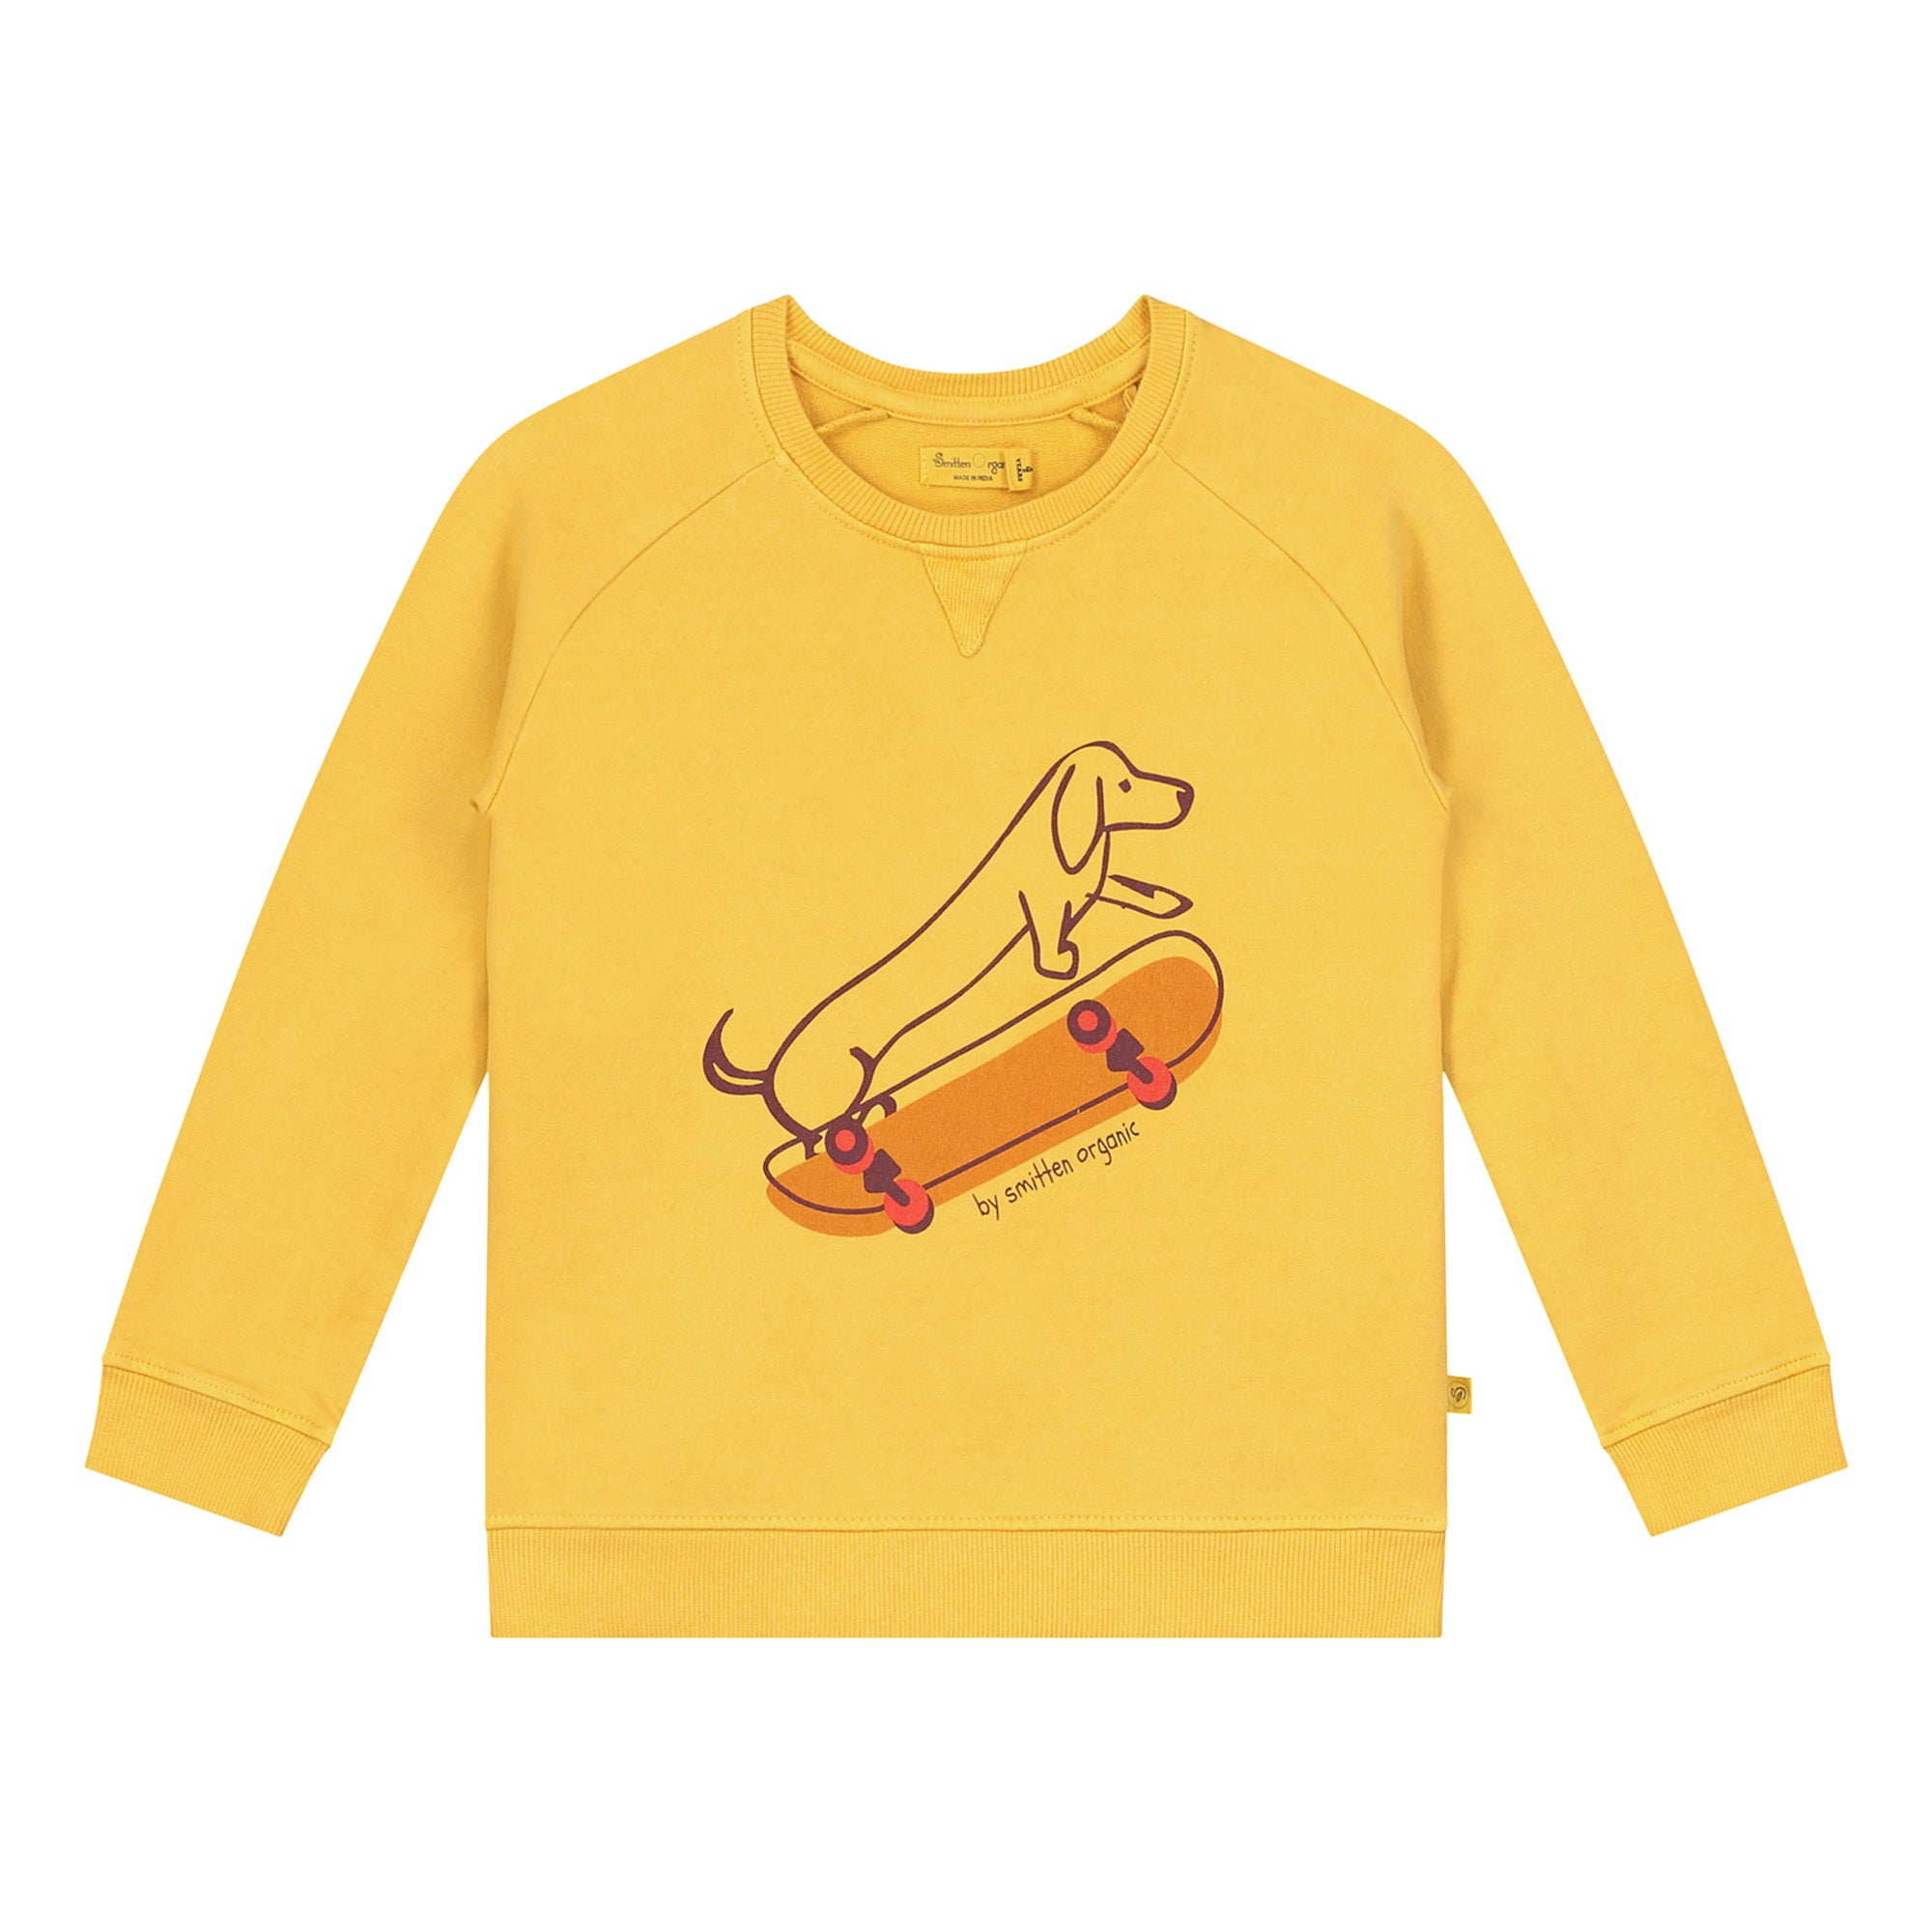 Skateboarding Cotton Fleece Unisex Sweatshirt